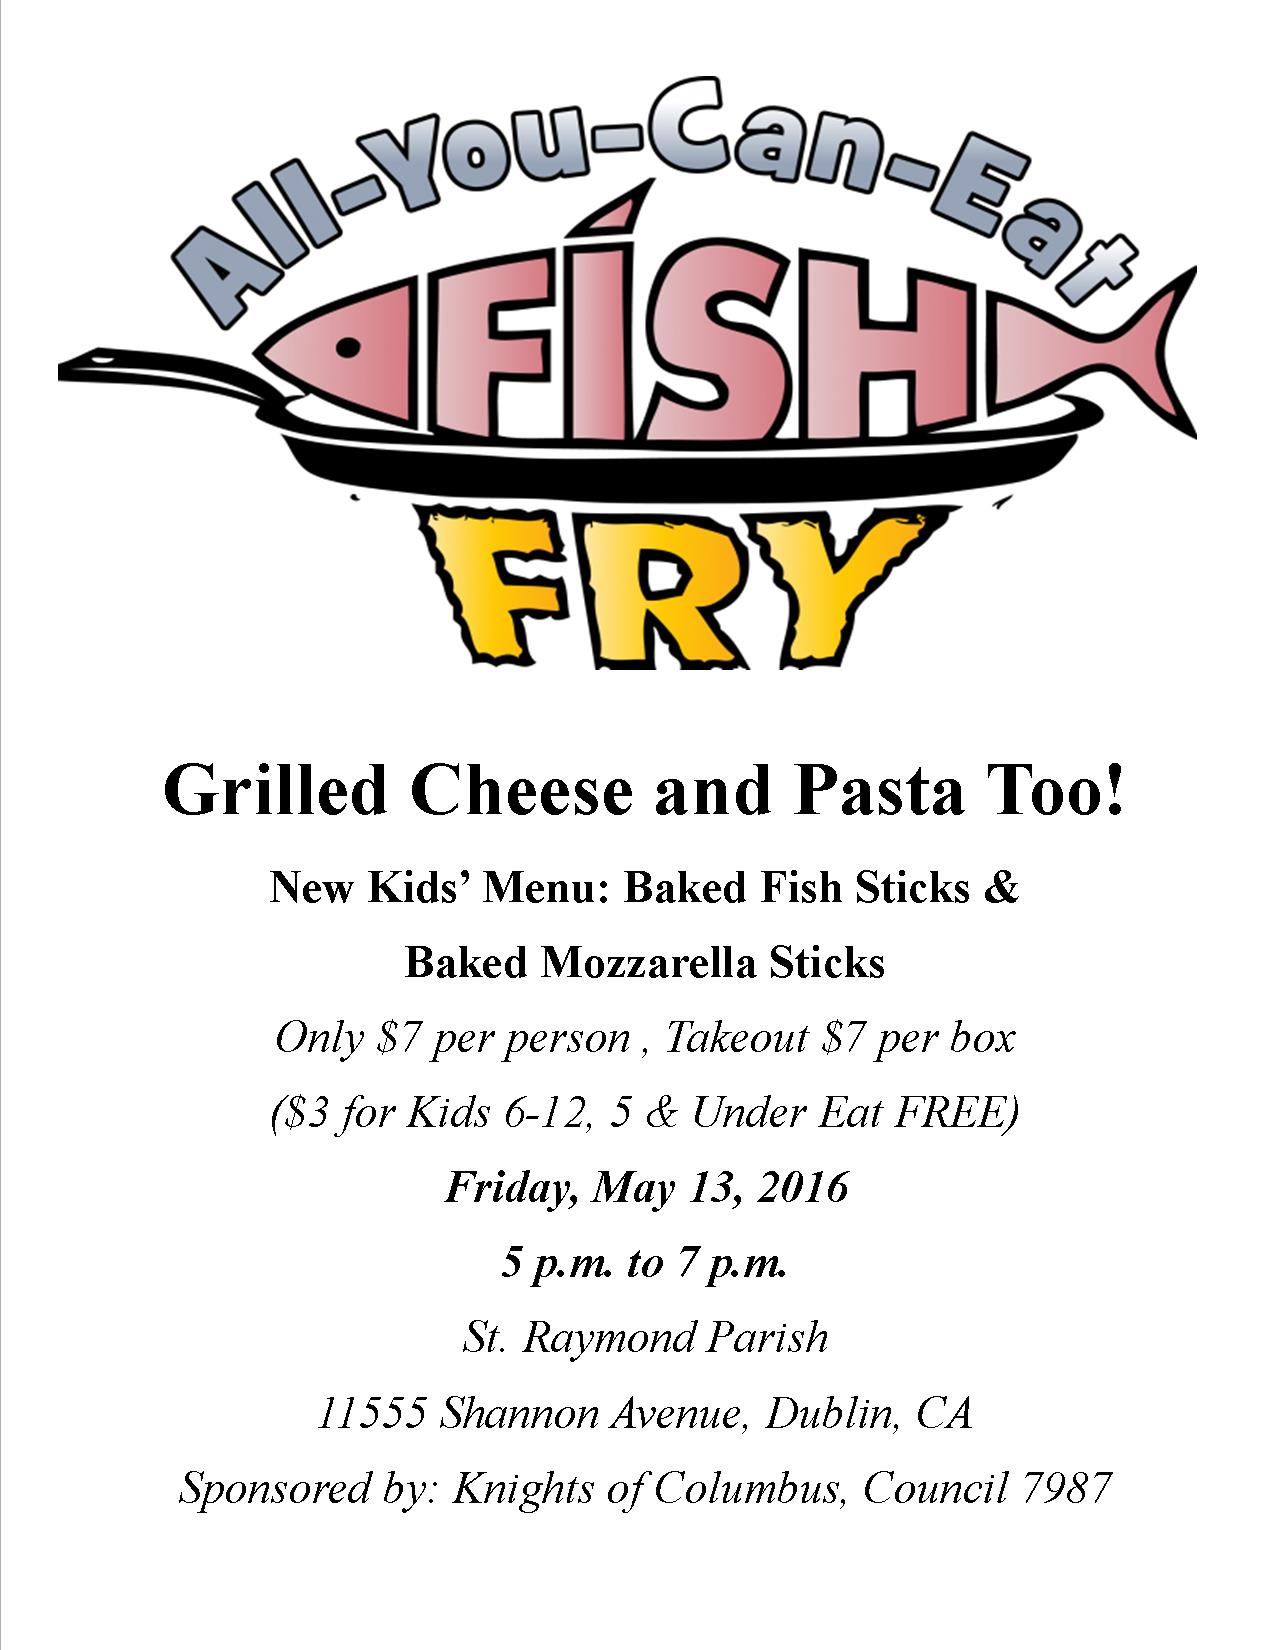 St raymond catholic church next fish fry may 13th 2016 for All you can eat fish fry